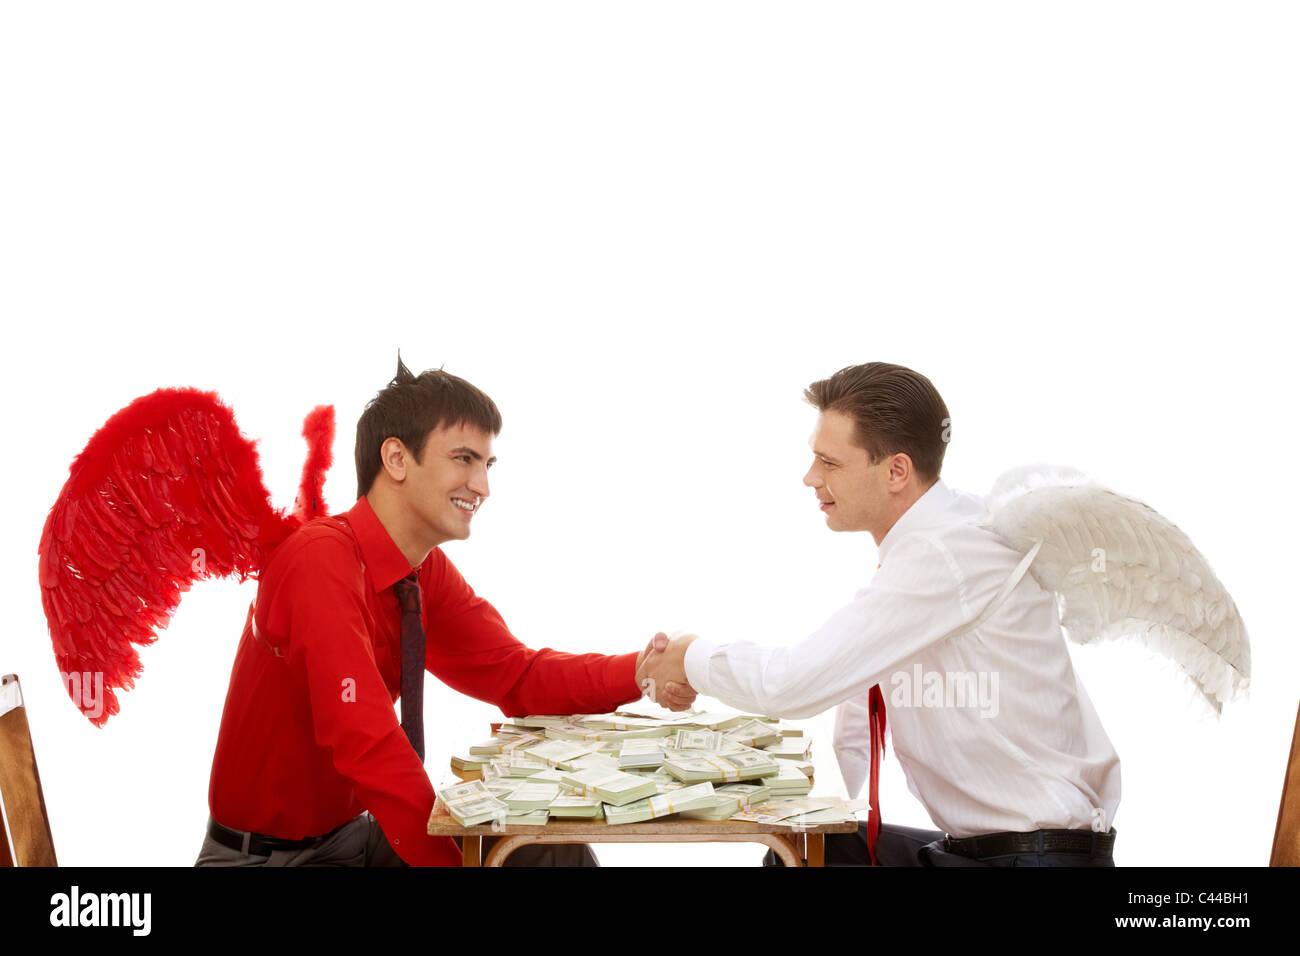 Image of deal between god and devil over table with dollars Stock Photo